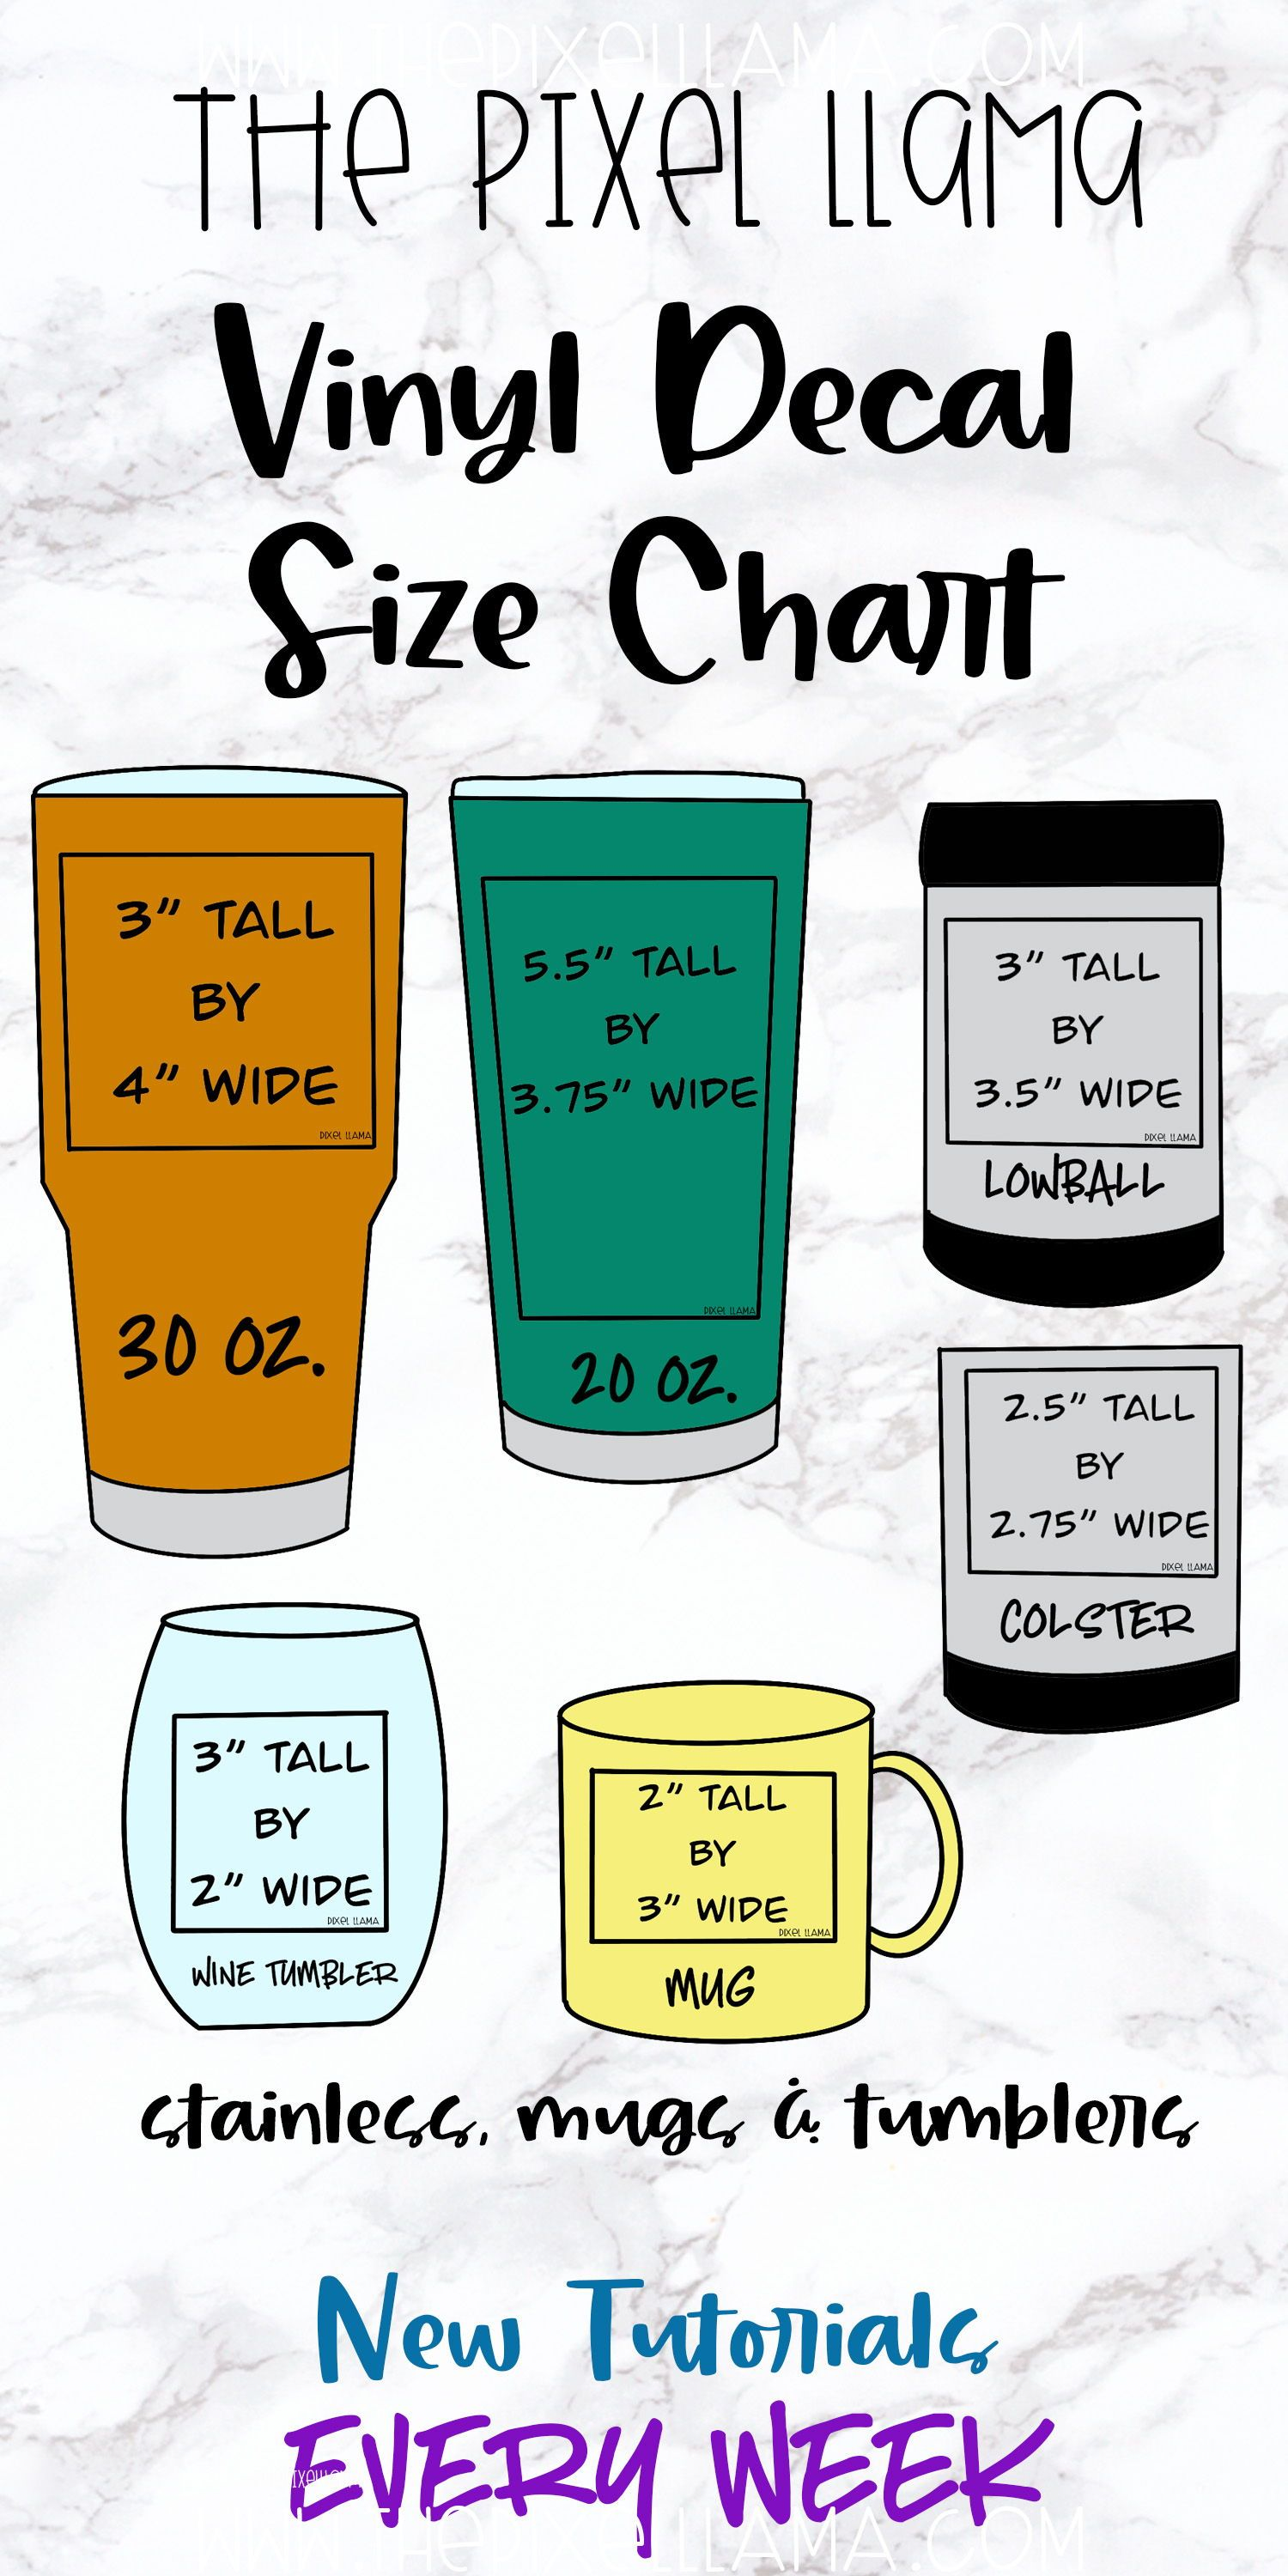 Vinyl Decal Size Chart for Cups